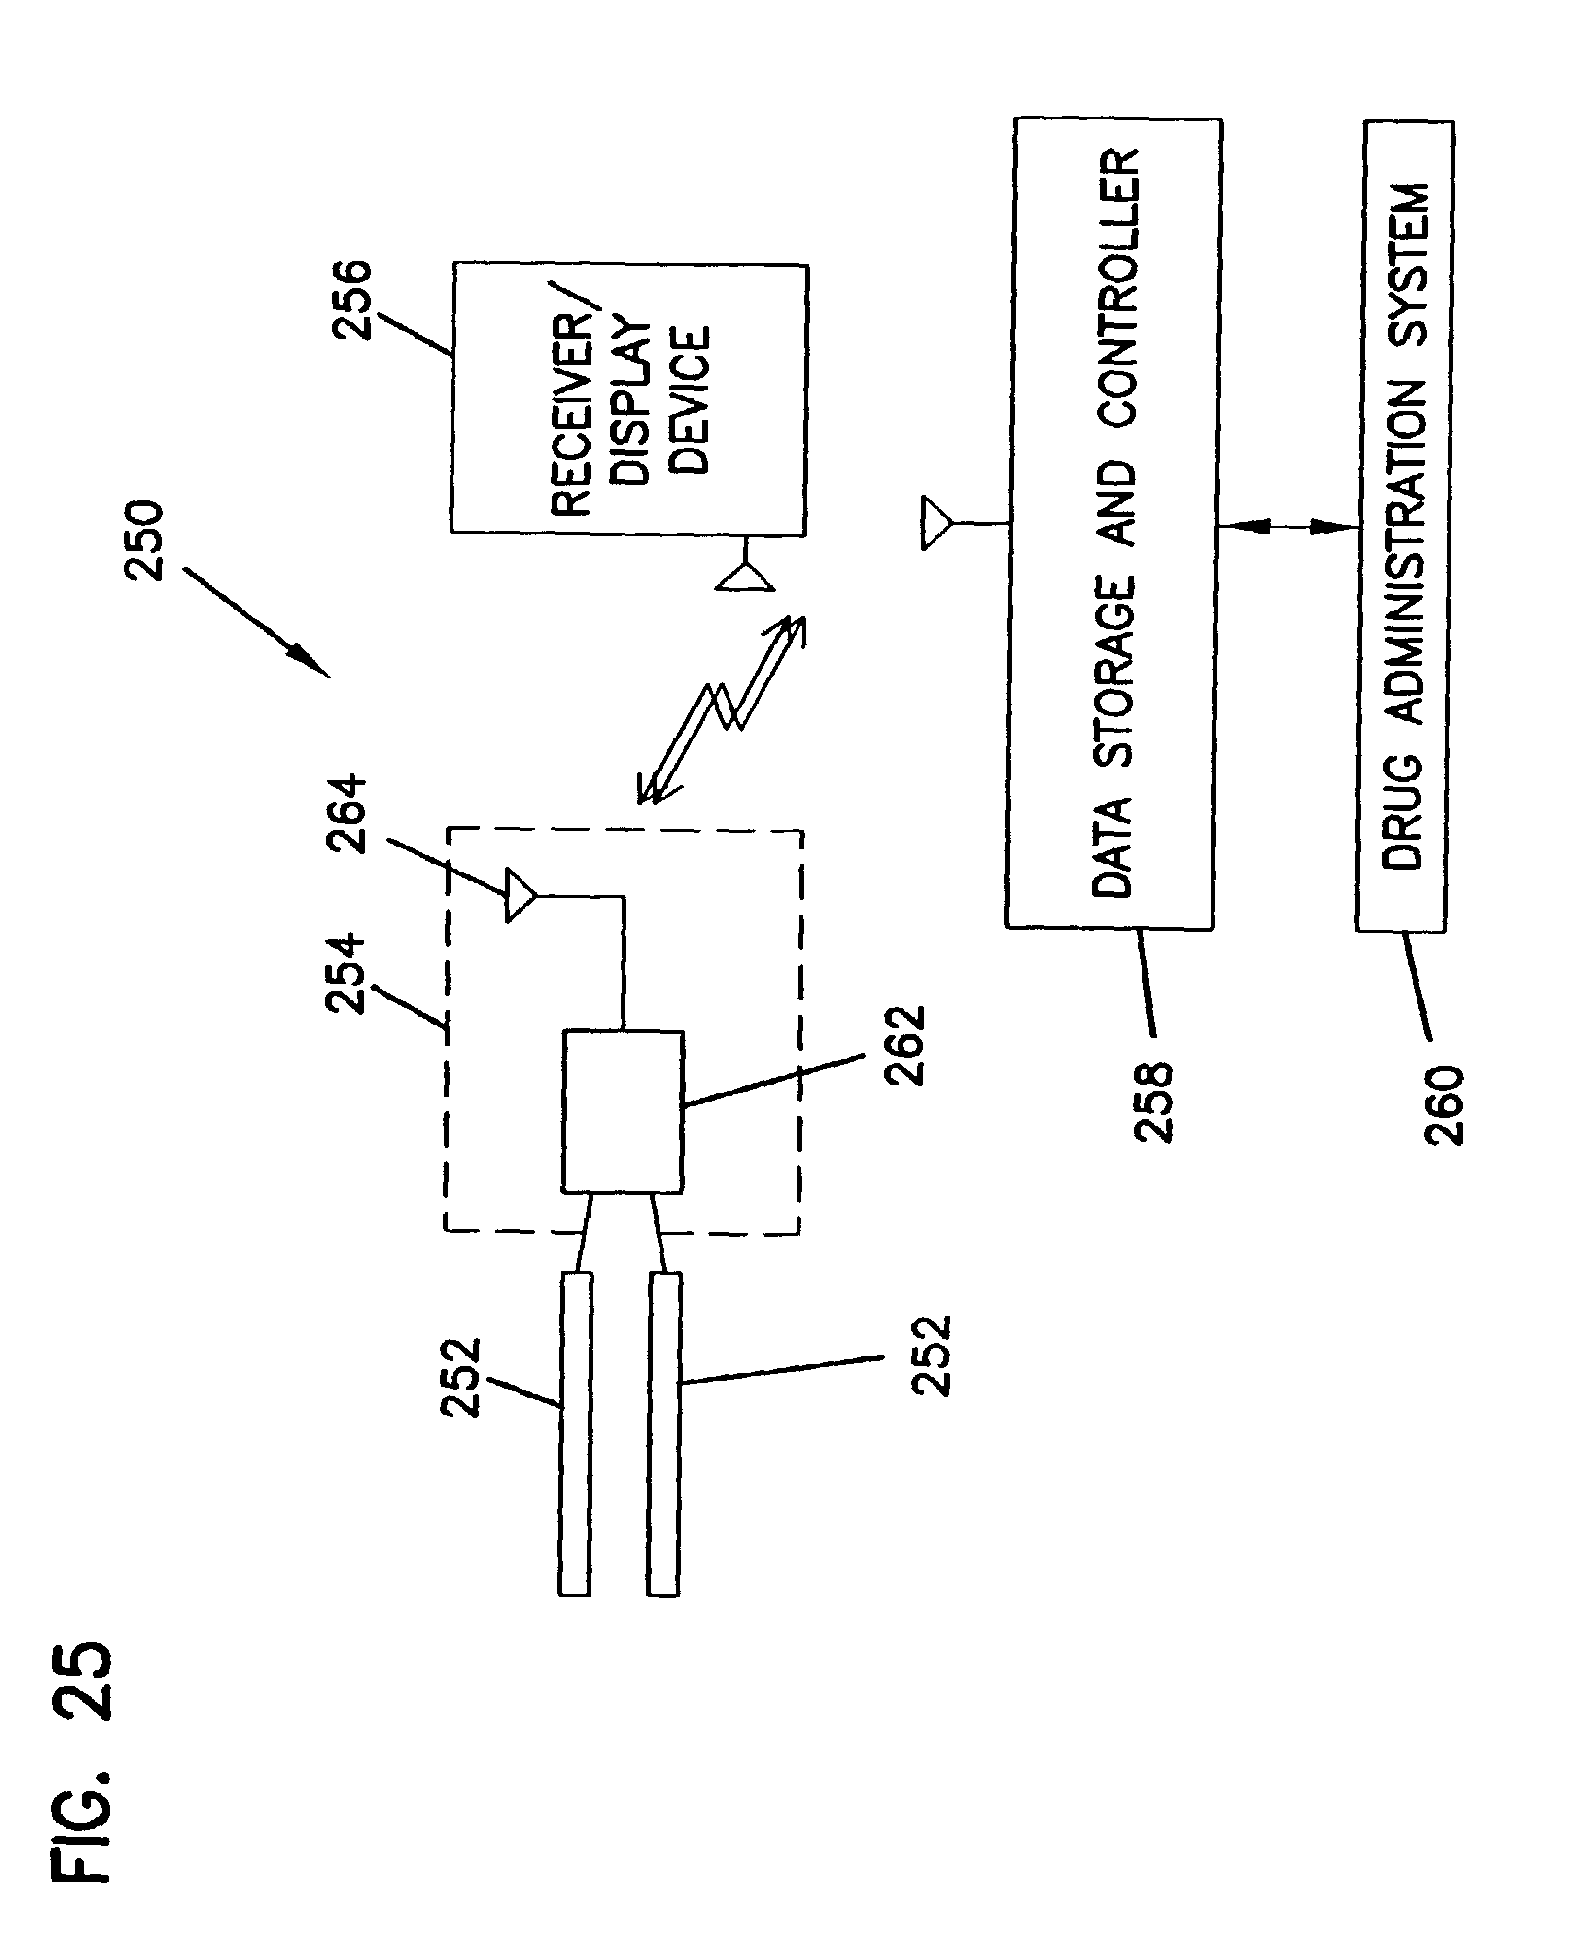 us8226558b2 analyte monitoring device and methods of use google us8226558b2 analyte monitoring device and methods of use google patents